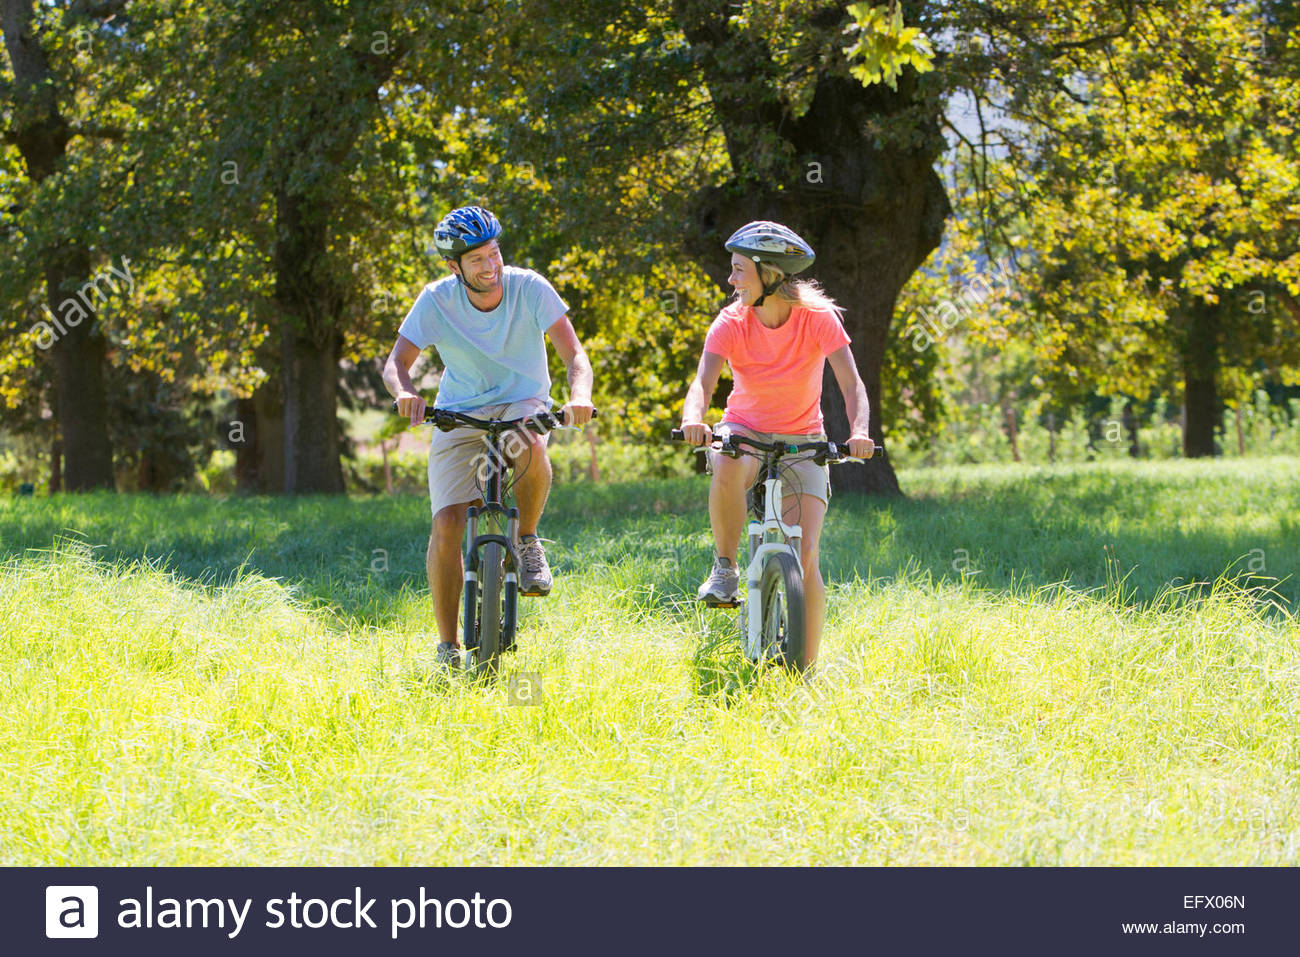 Couple, mountain biking, in treelined field - Stock Image